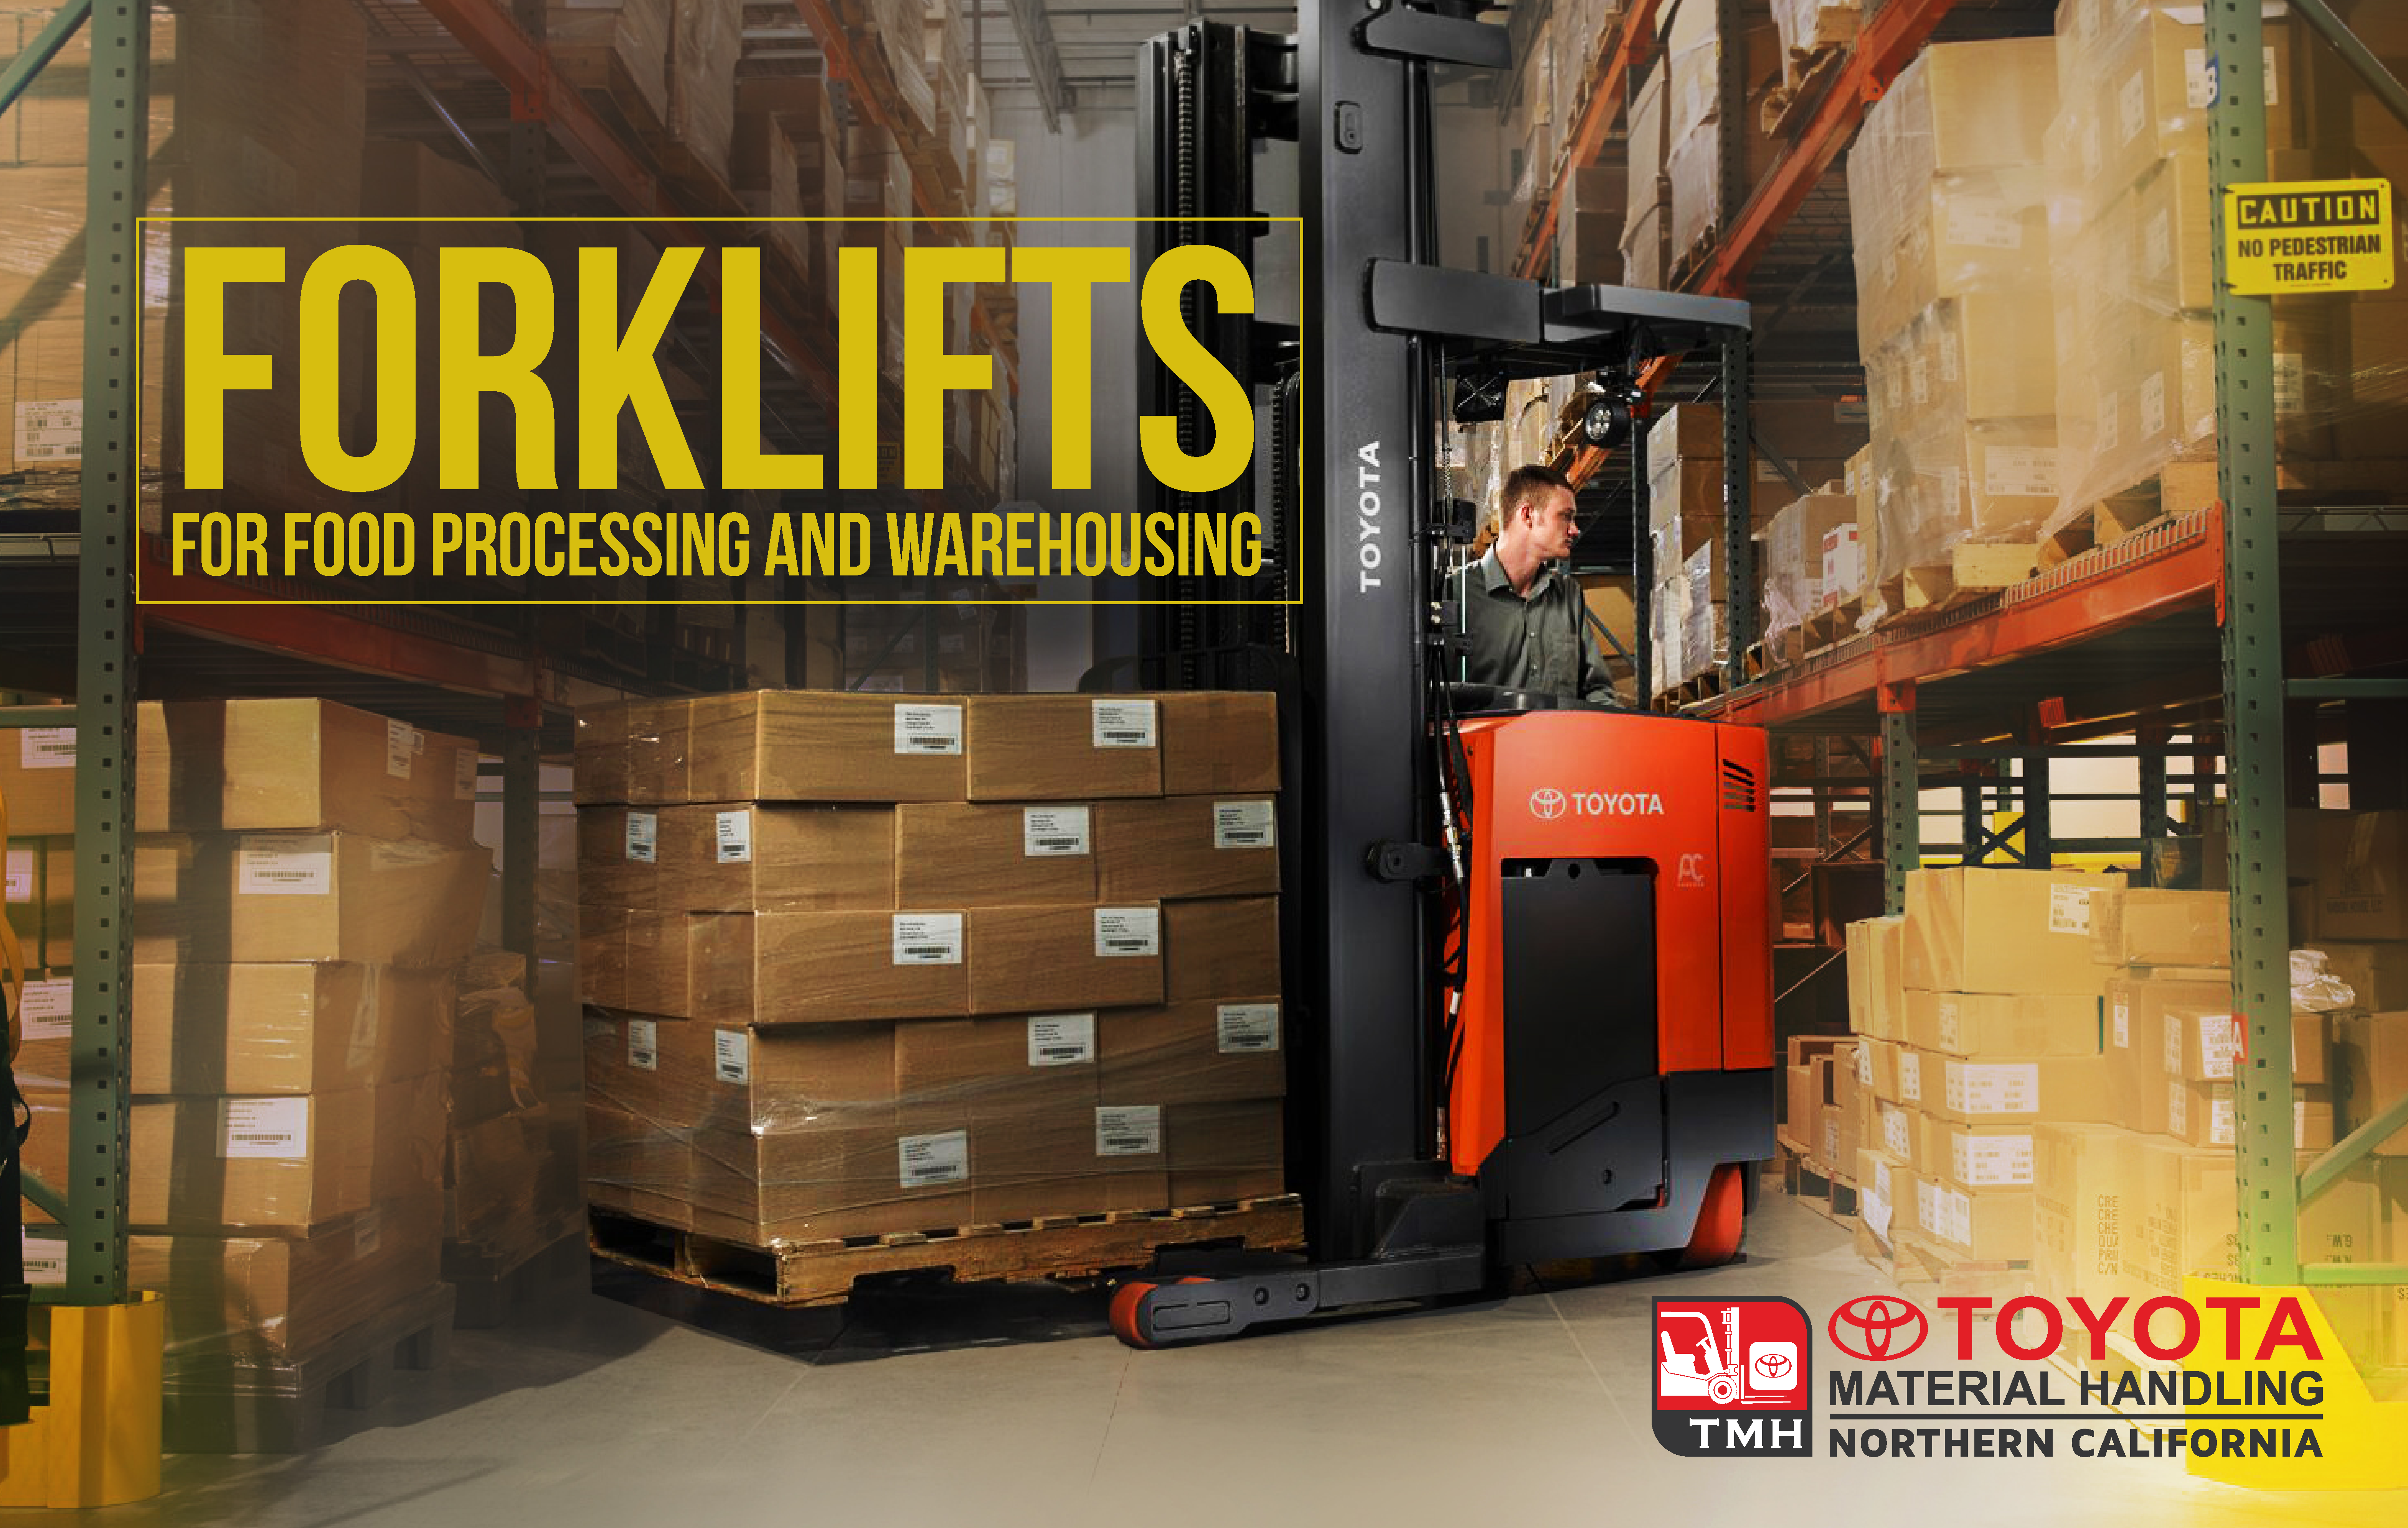 forklifts_for_food_processing_and_warehousing.png